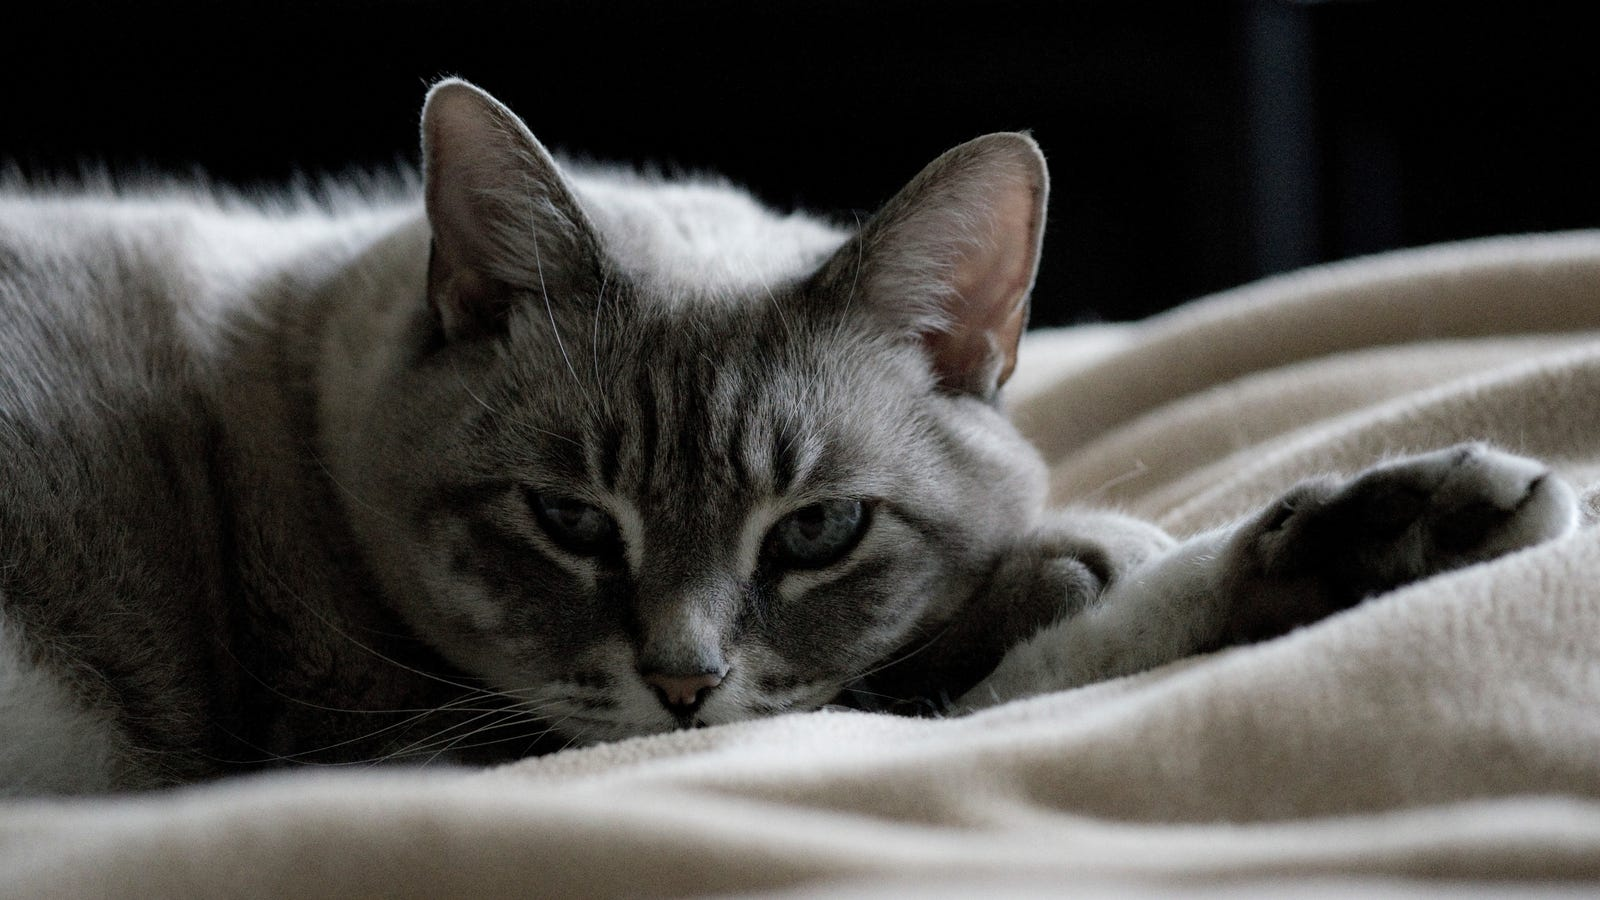 A Common Household Chemical May Cause Thyroid Problems for Cats